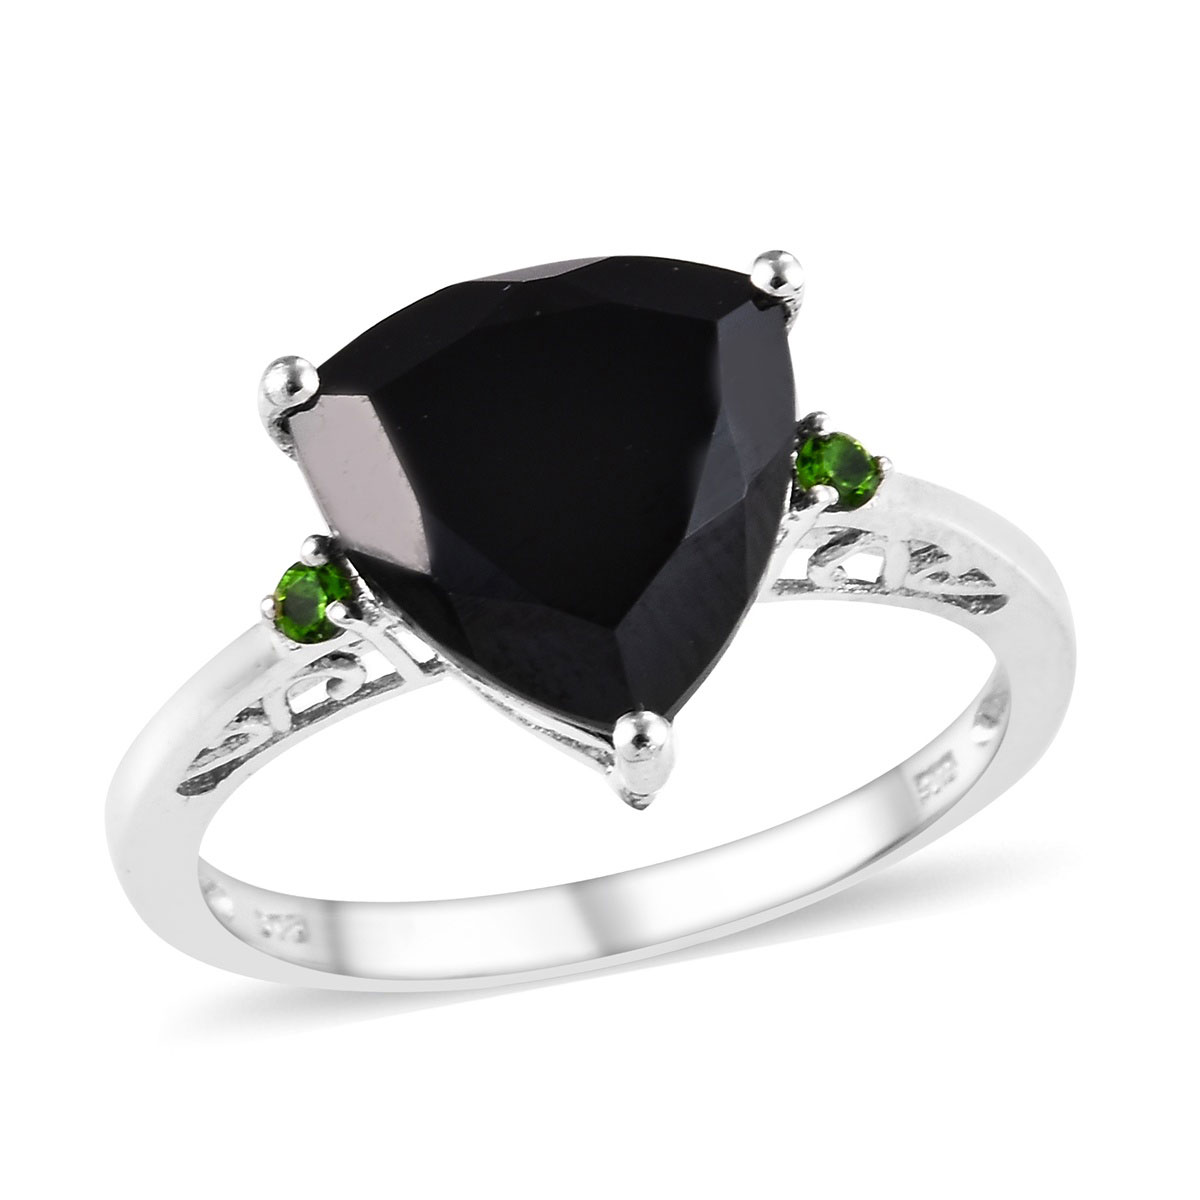 Thai Black Spinel, Russian Diopside Ring in Platinum Over Sterling Silver (Size 9.0) 7.60 ctw